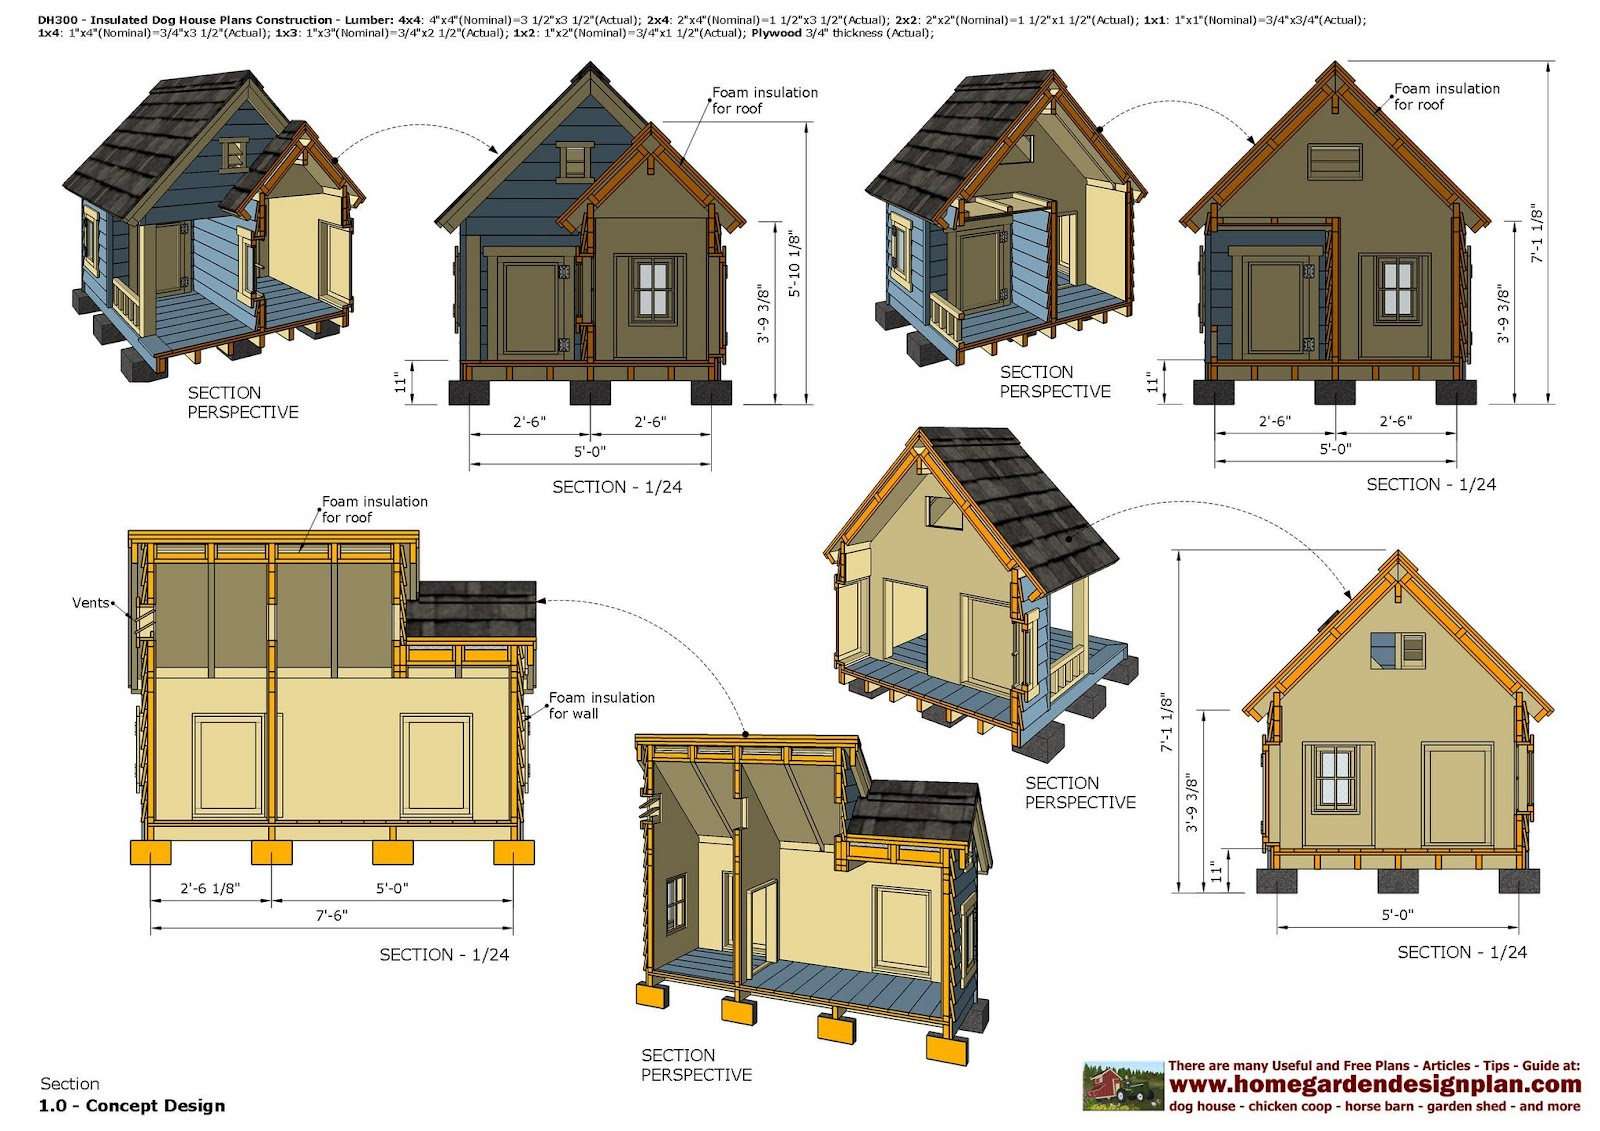 Home Garden Plans Dh300 Insulated Dog House Plans